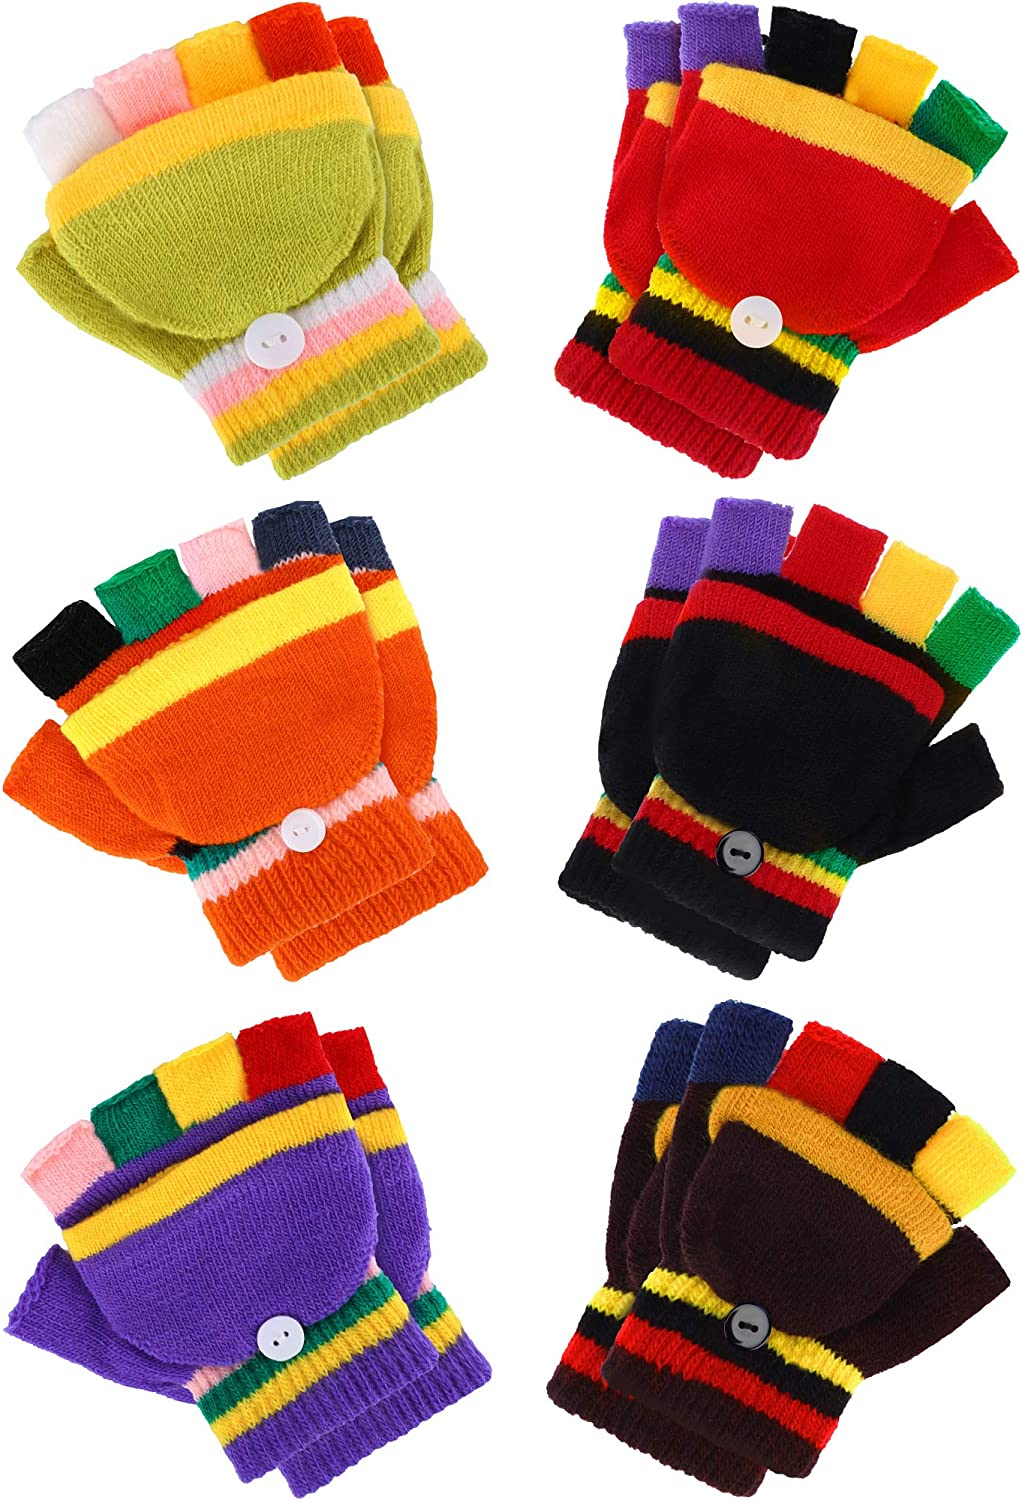 6 Pairs Convertible Fingerless Gloves Warm Knit Glove with Mitten Cover for Kids (Color Set 4)